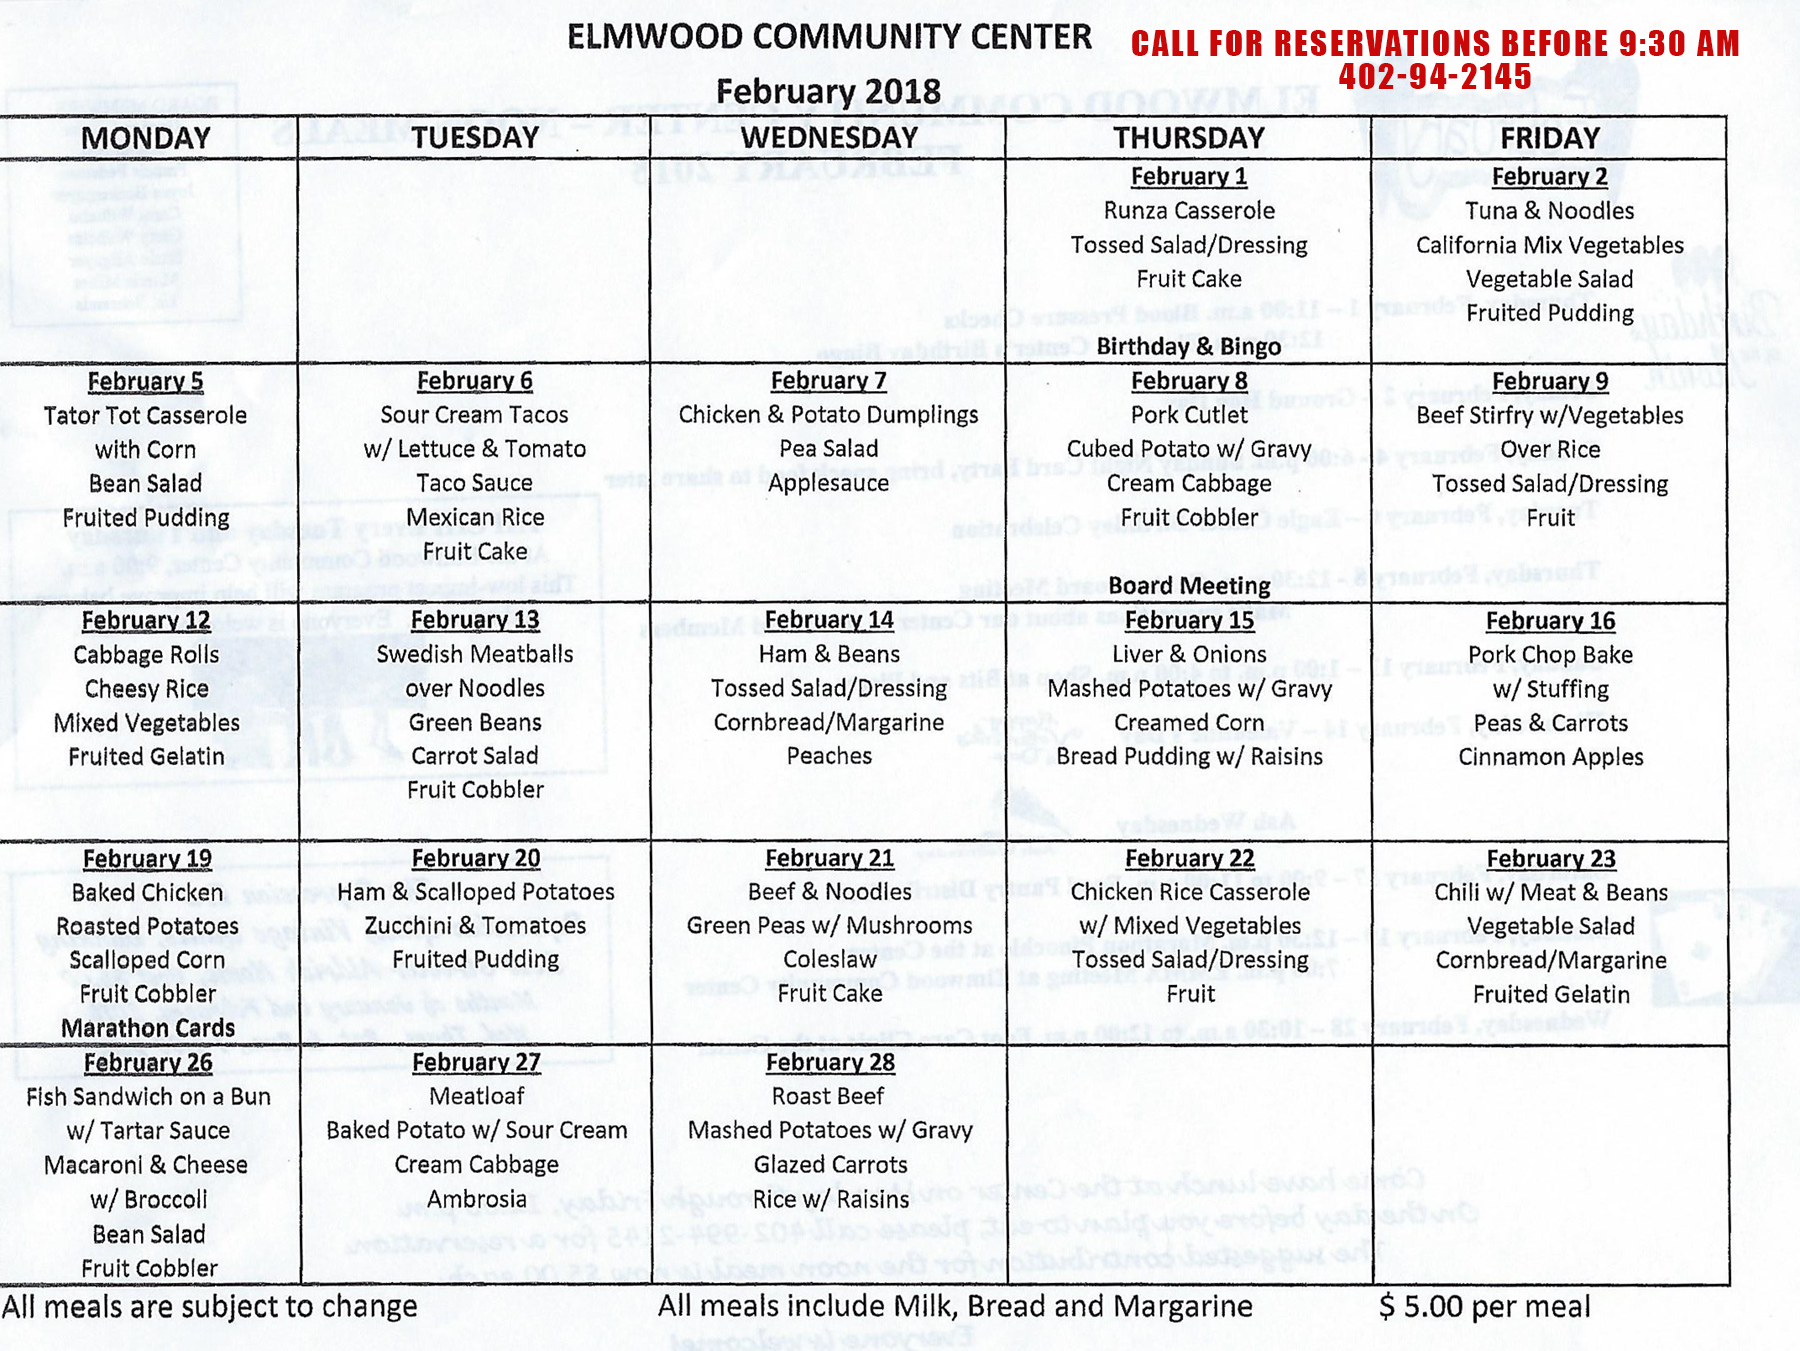 Elmwoo CommunityCenter Menu 02 2018